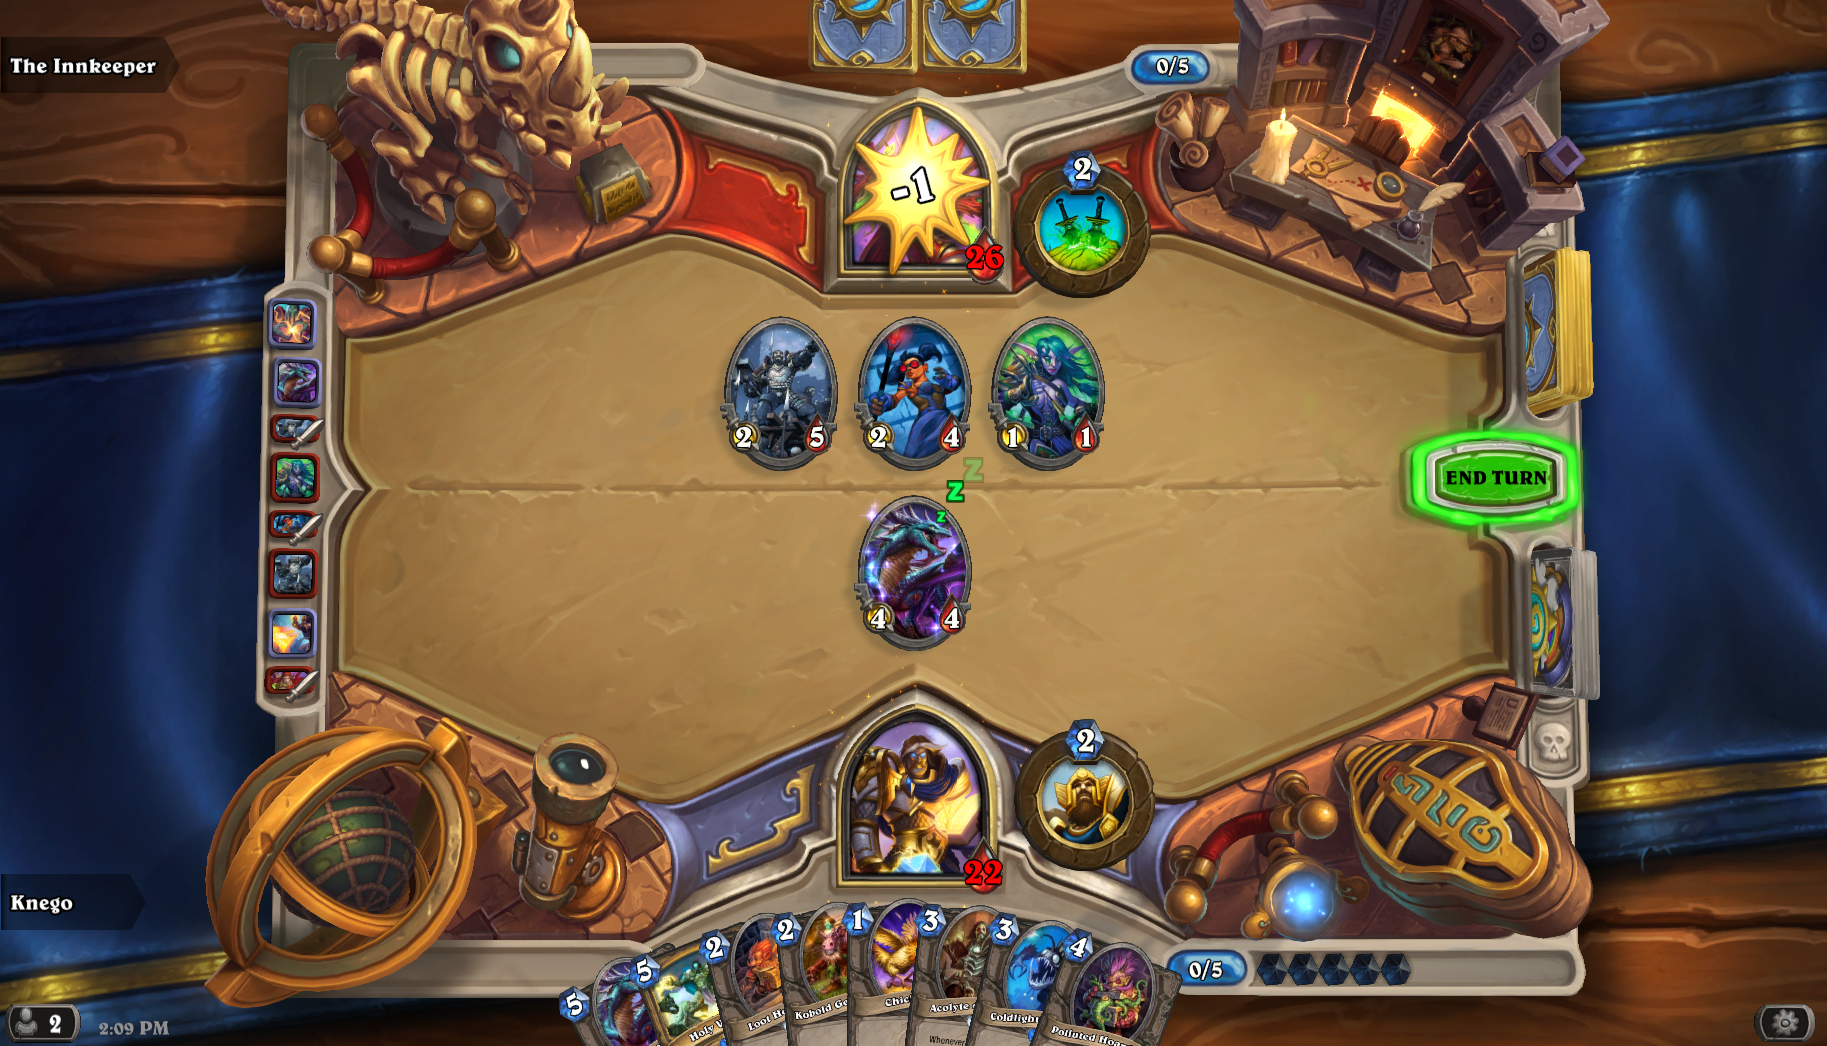 Hearthstone Screenshot 04-29-16 14.09.52